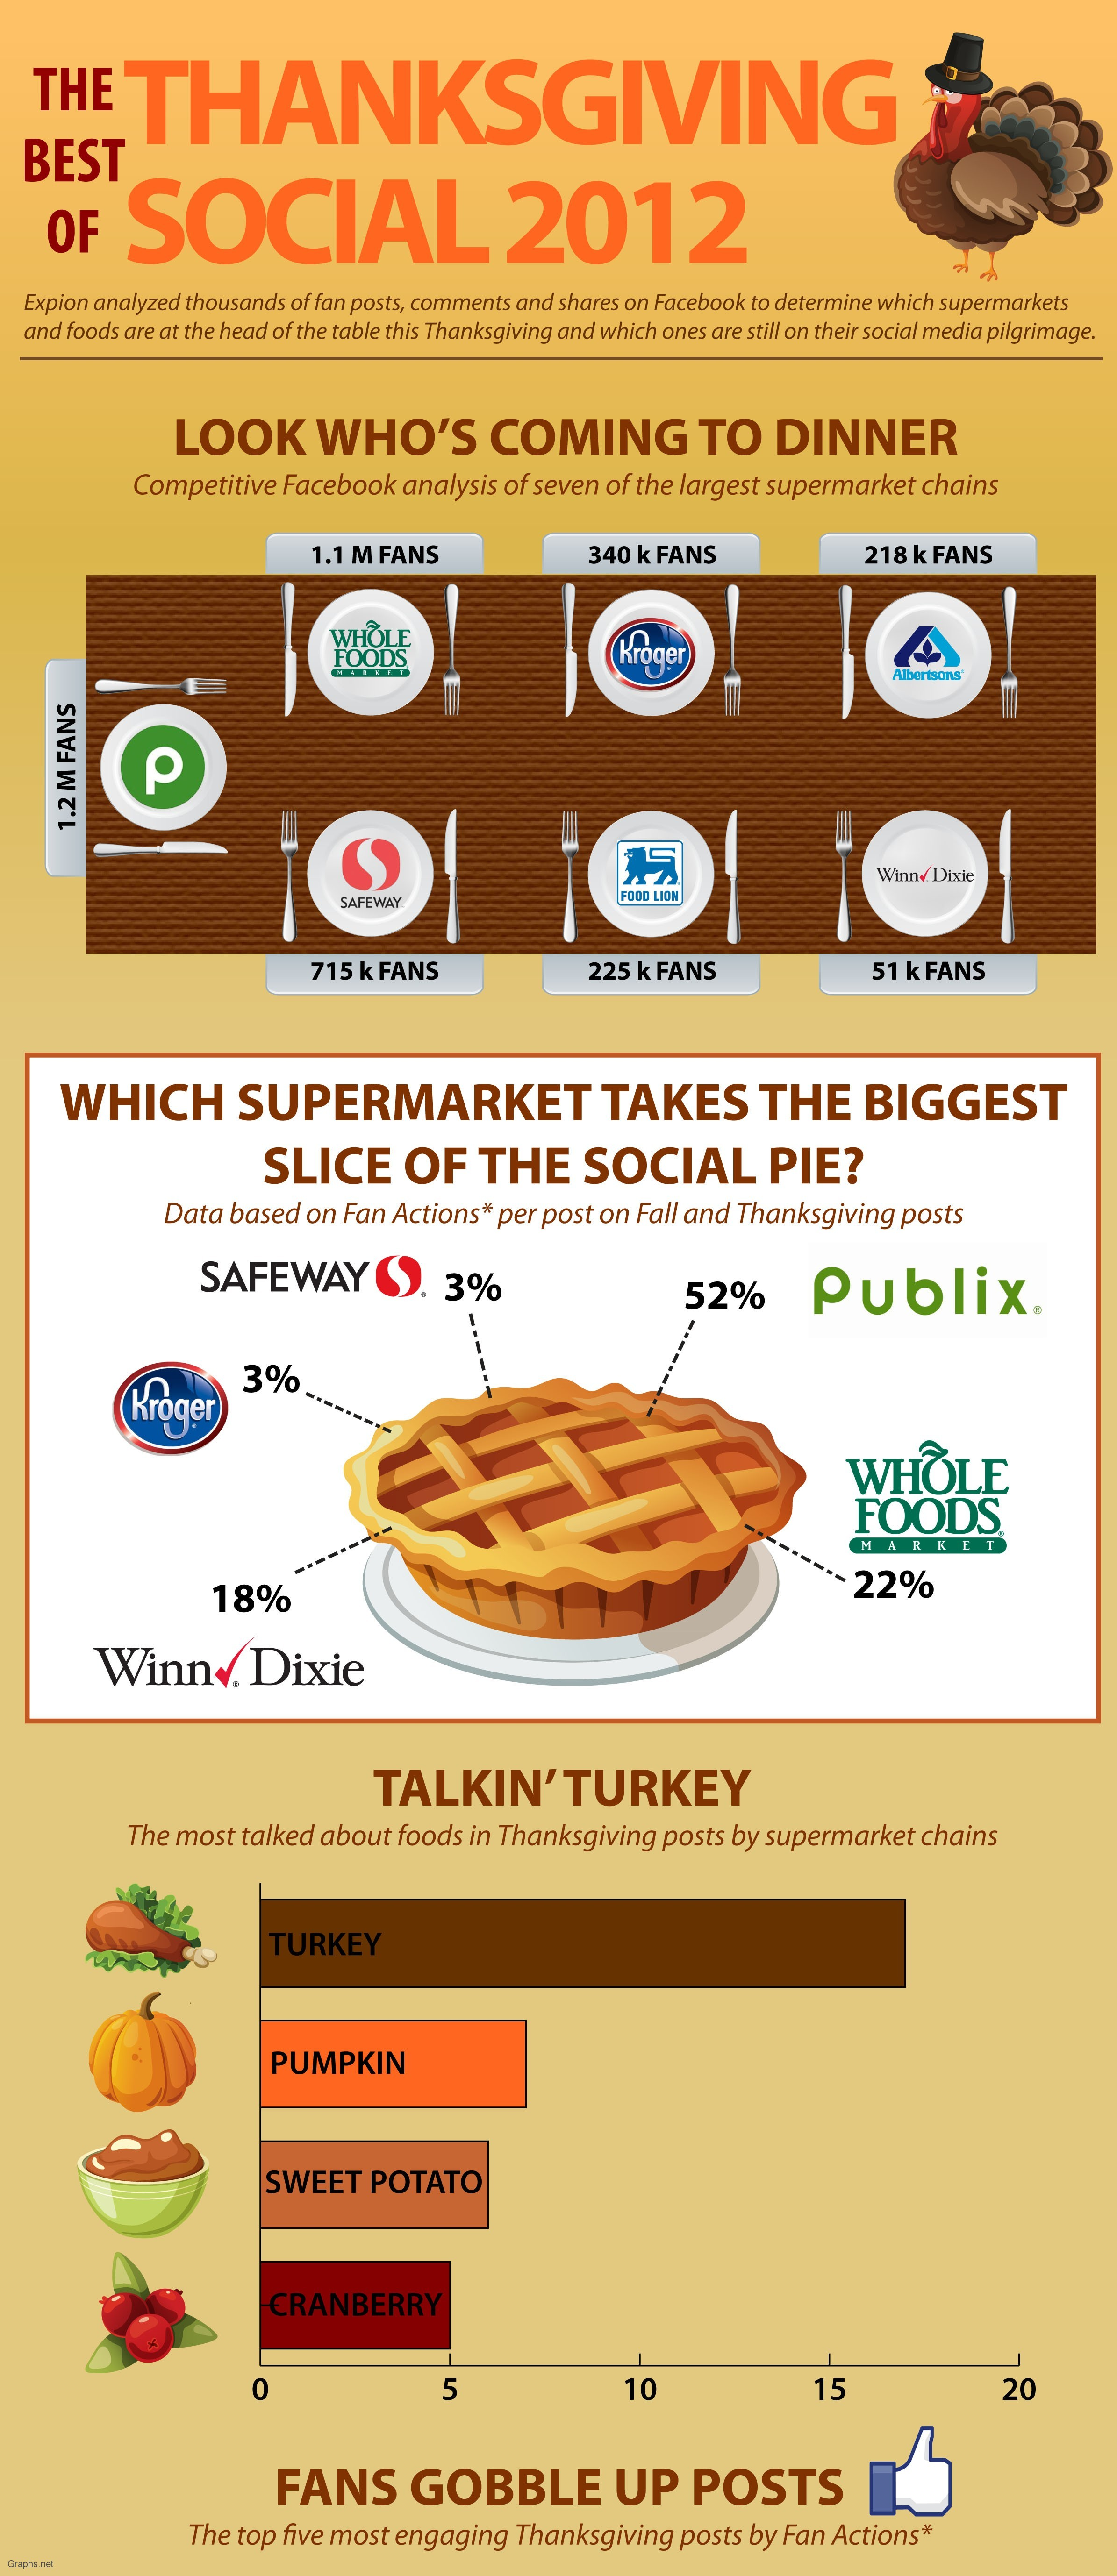 Largest Supermarket Chains on Social Media